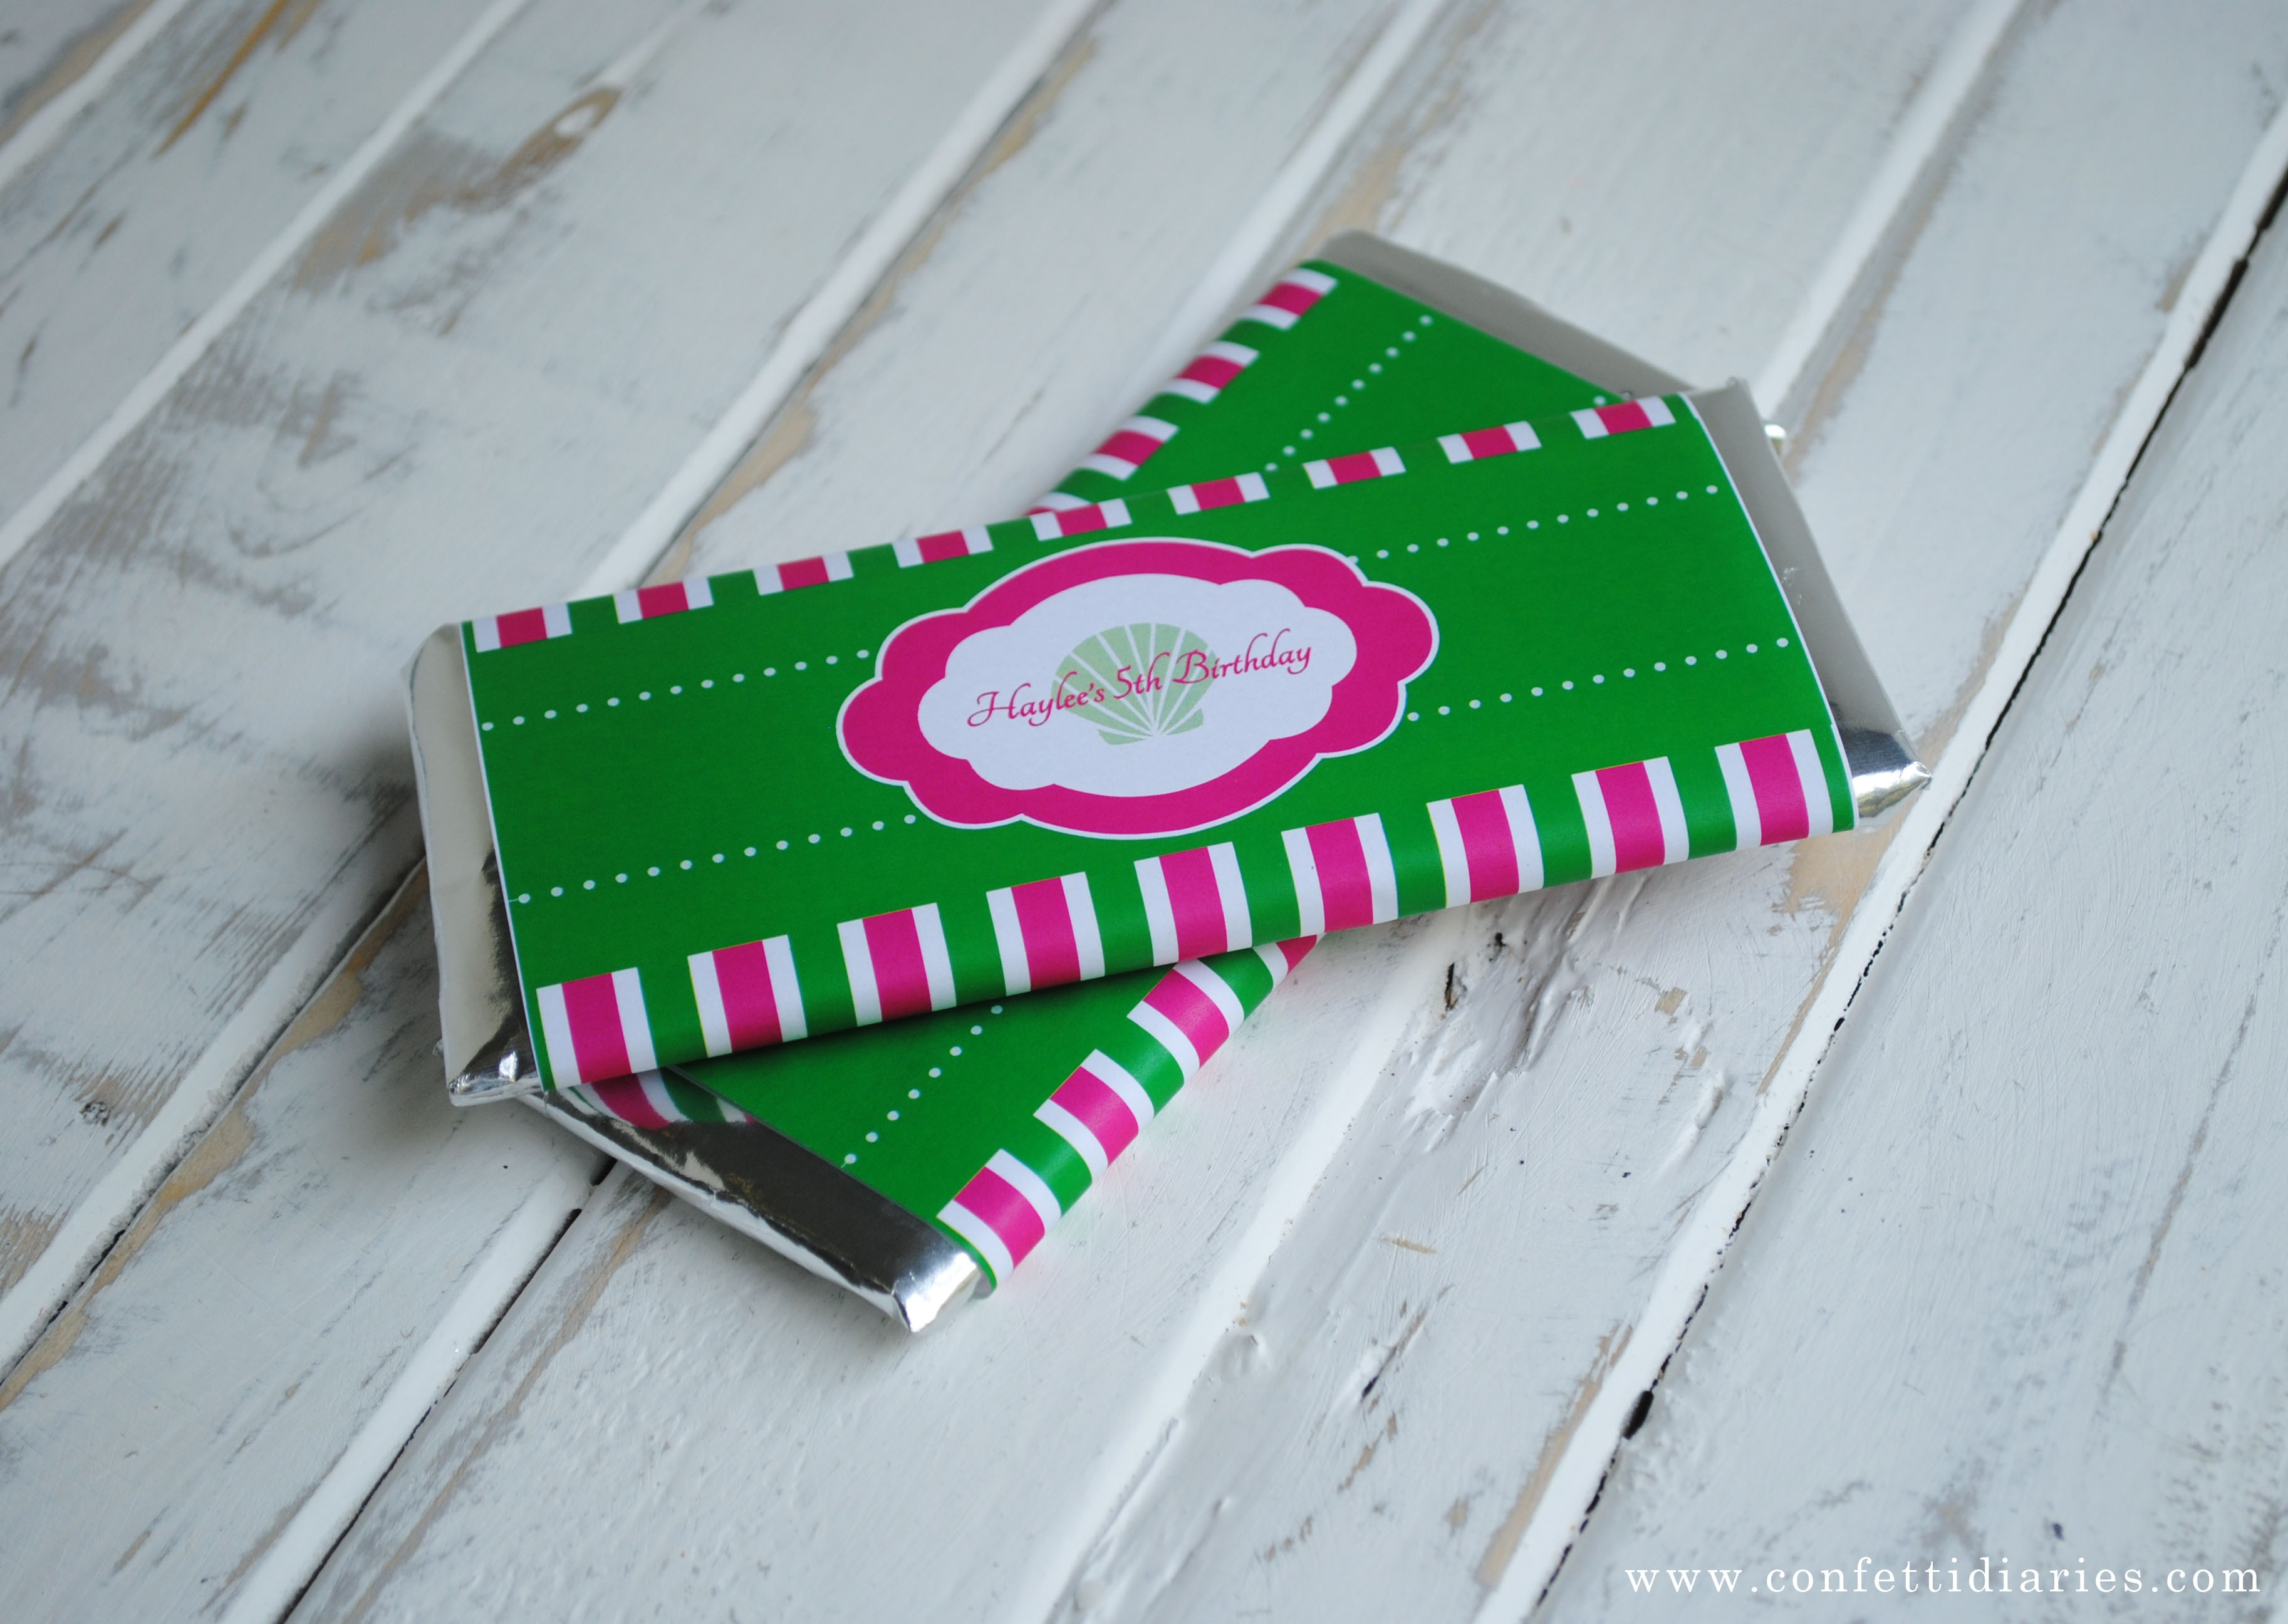 Free Printable Candy Bar Wrapper Templates - Katarina's Paperie - Free Printable Chocolate Wrappers